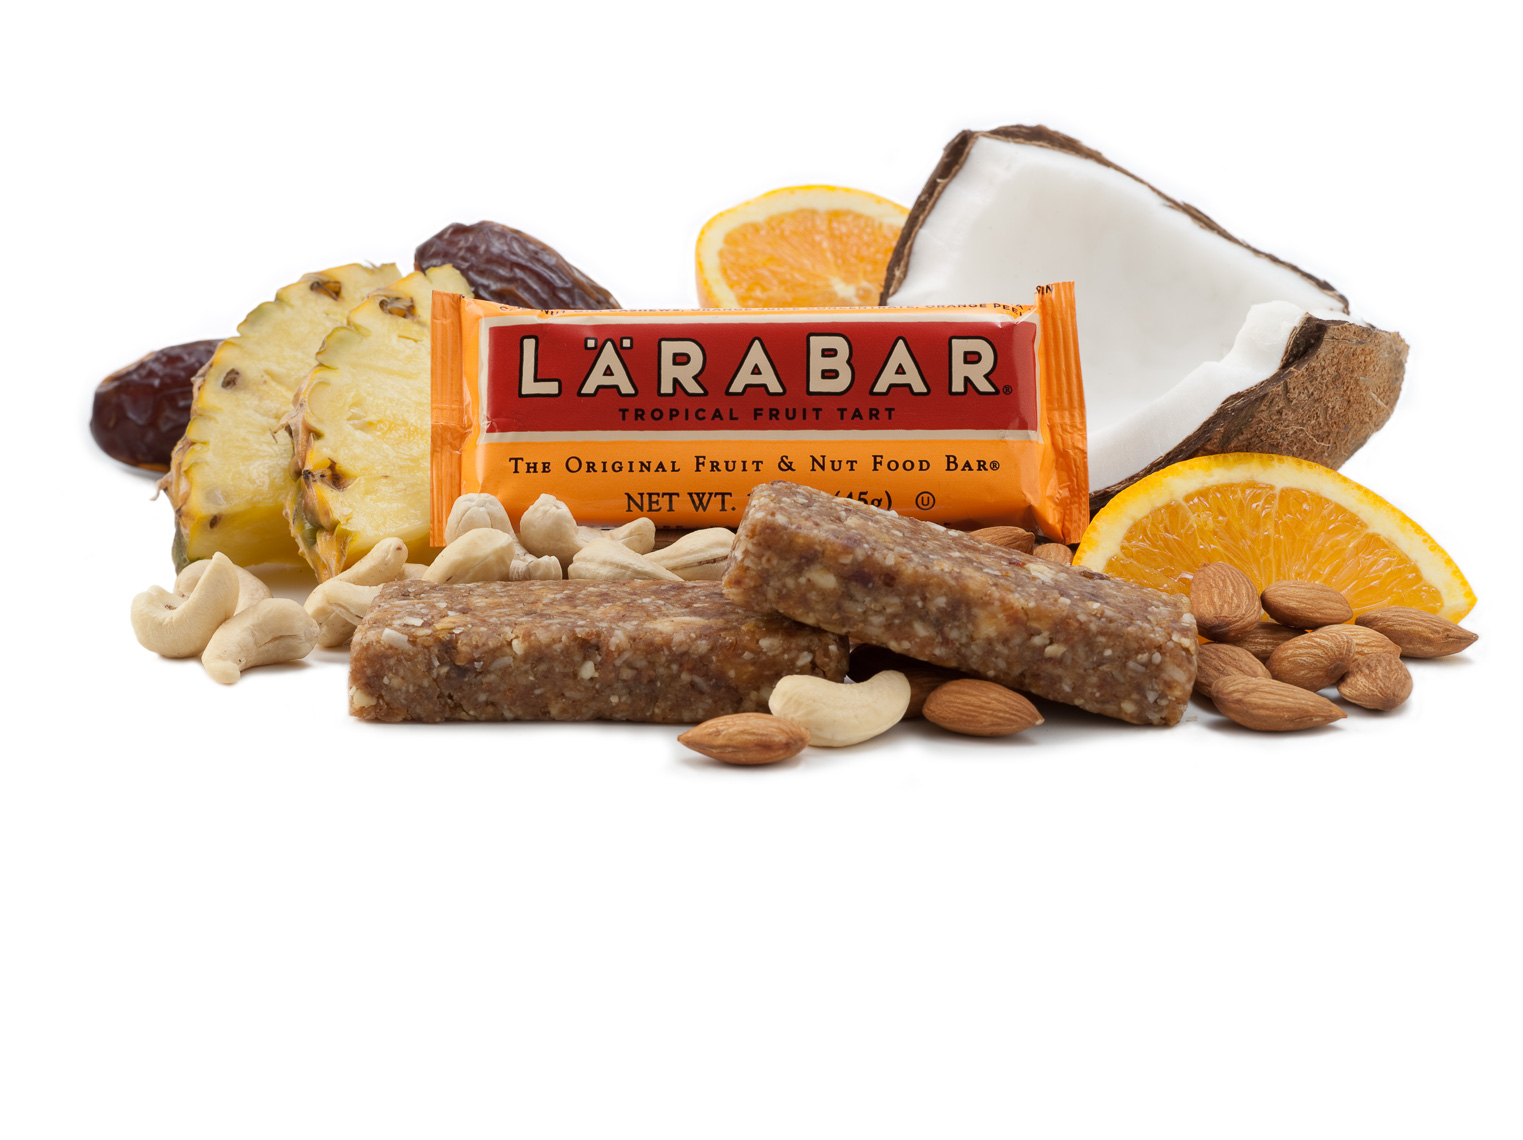 Larabar food photography